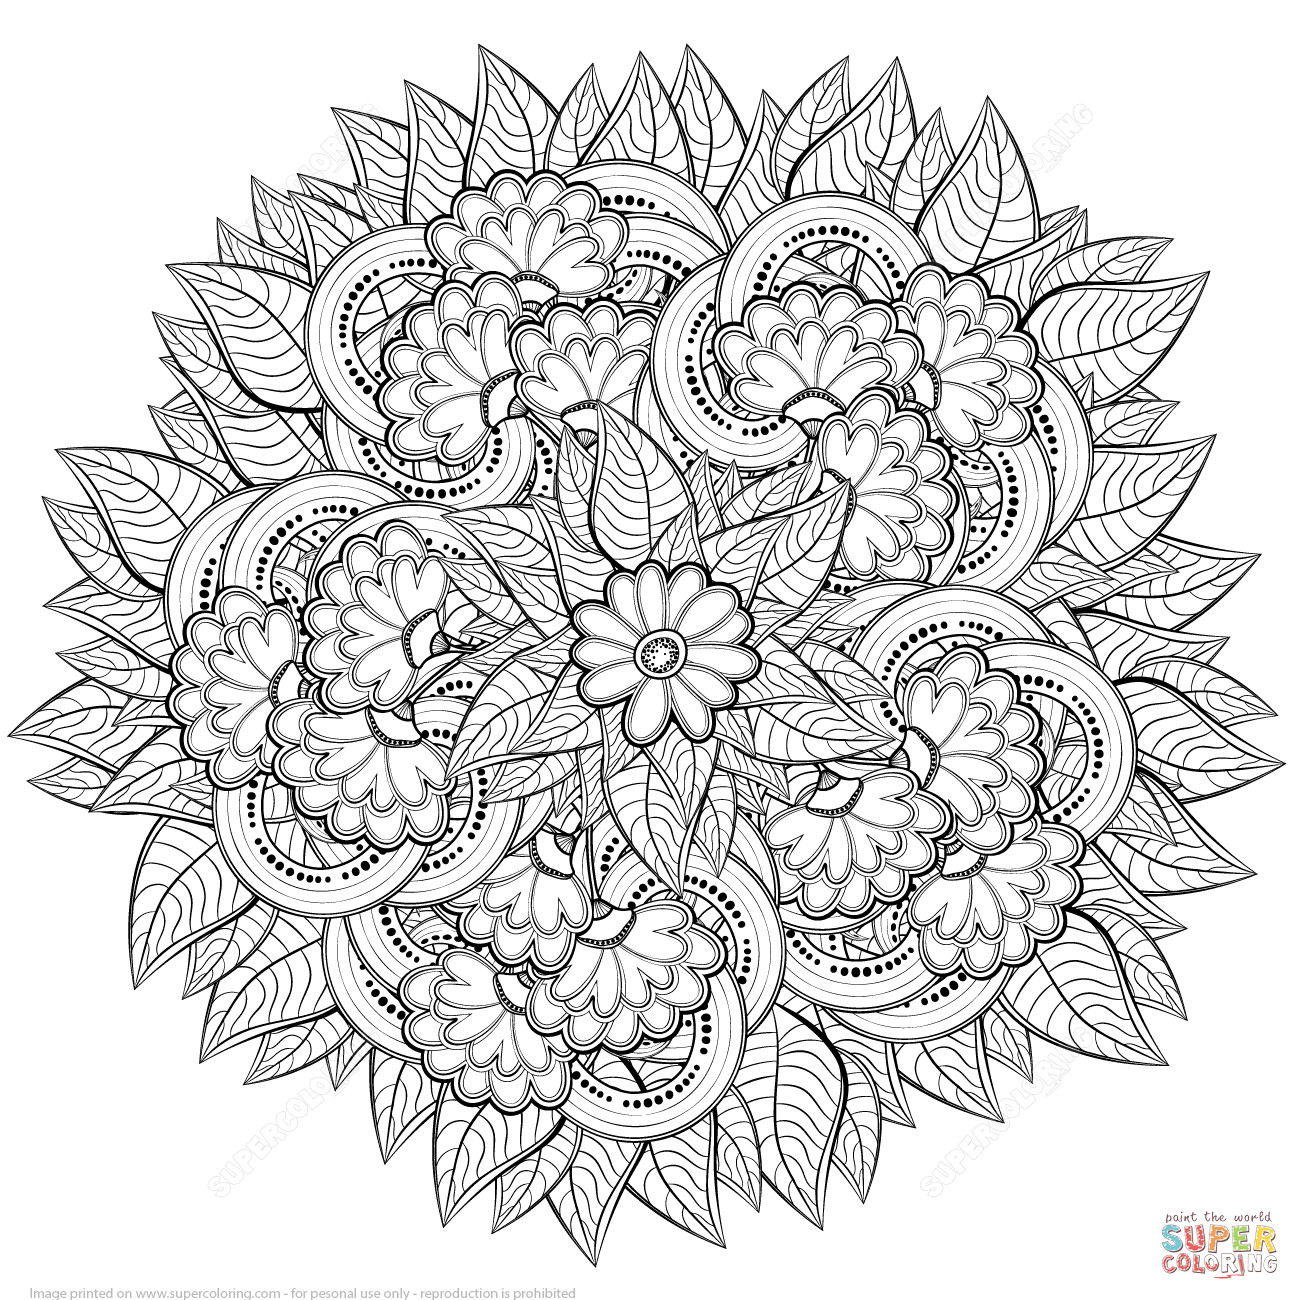 Best ideas about Free Printable Coloring Pages For Adults Hard That Are Zentangles . Save or Pin Abstract Flowers Zentangle coloring page Now.